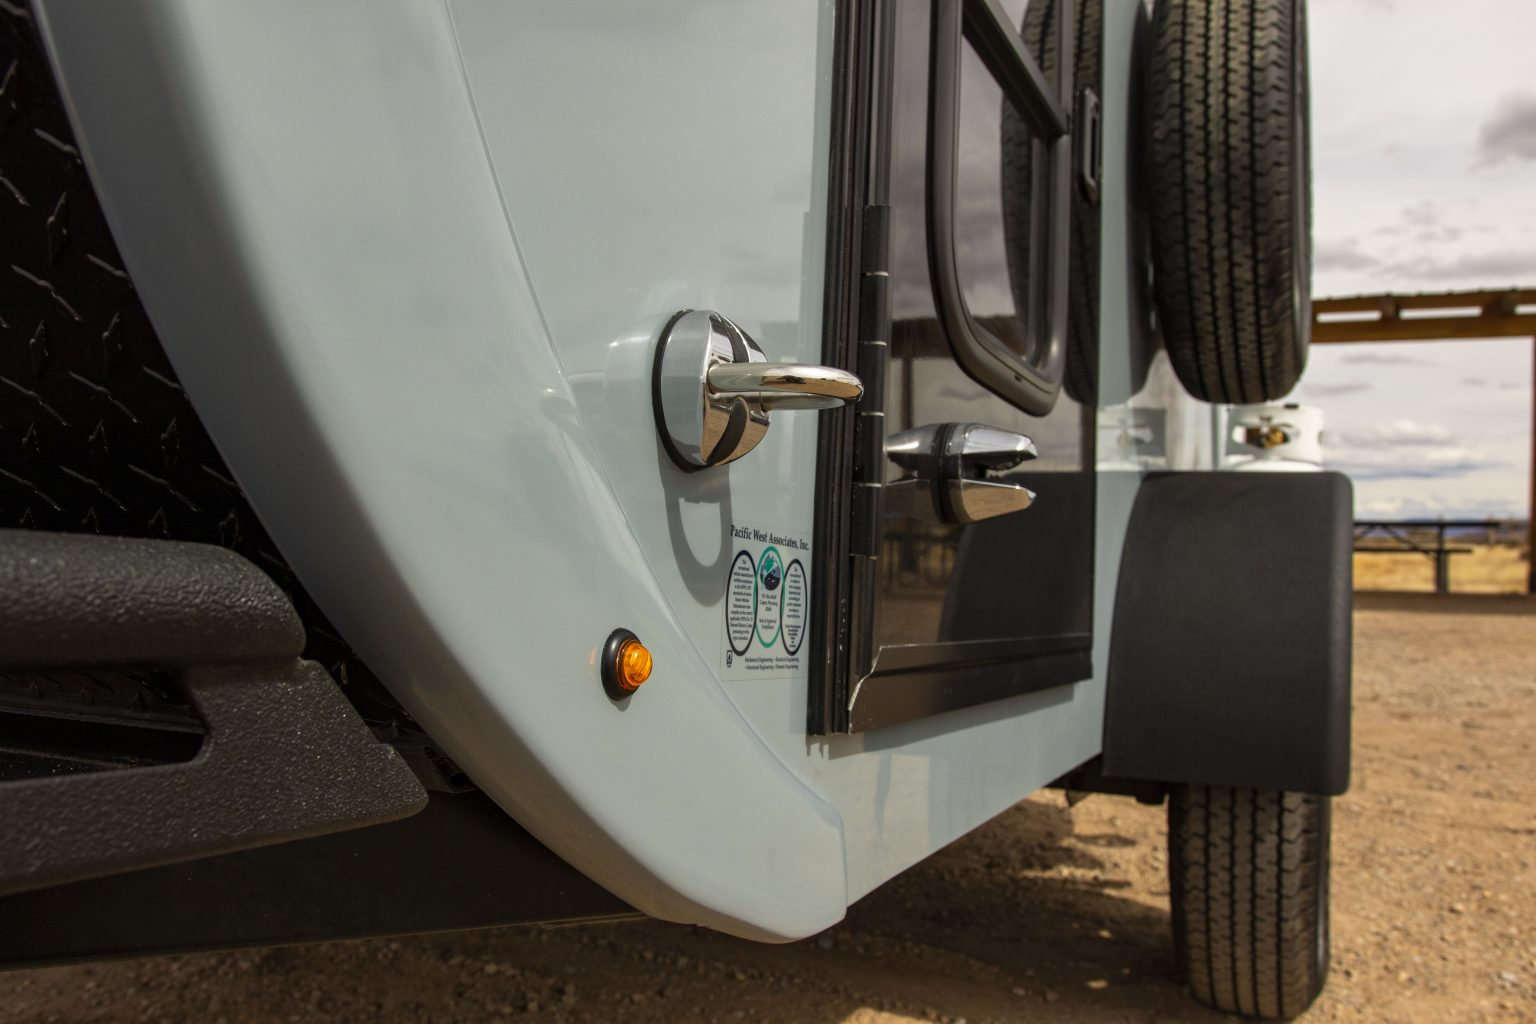 Lateral view of trailer door.